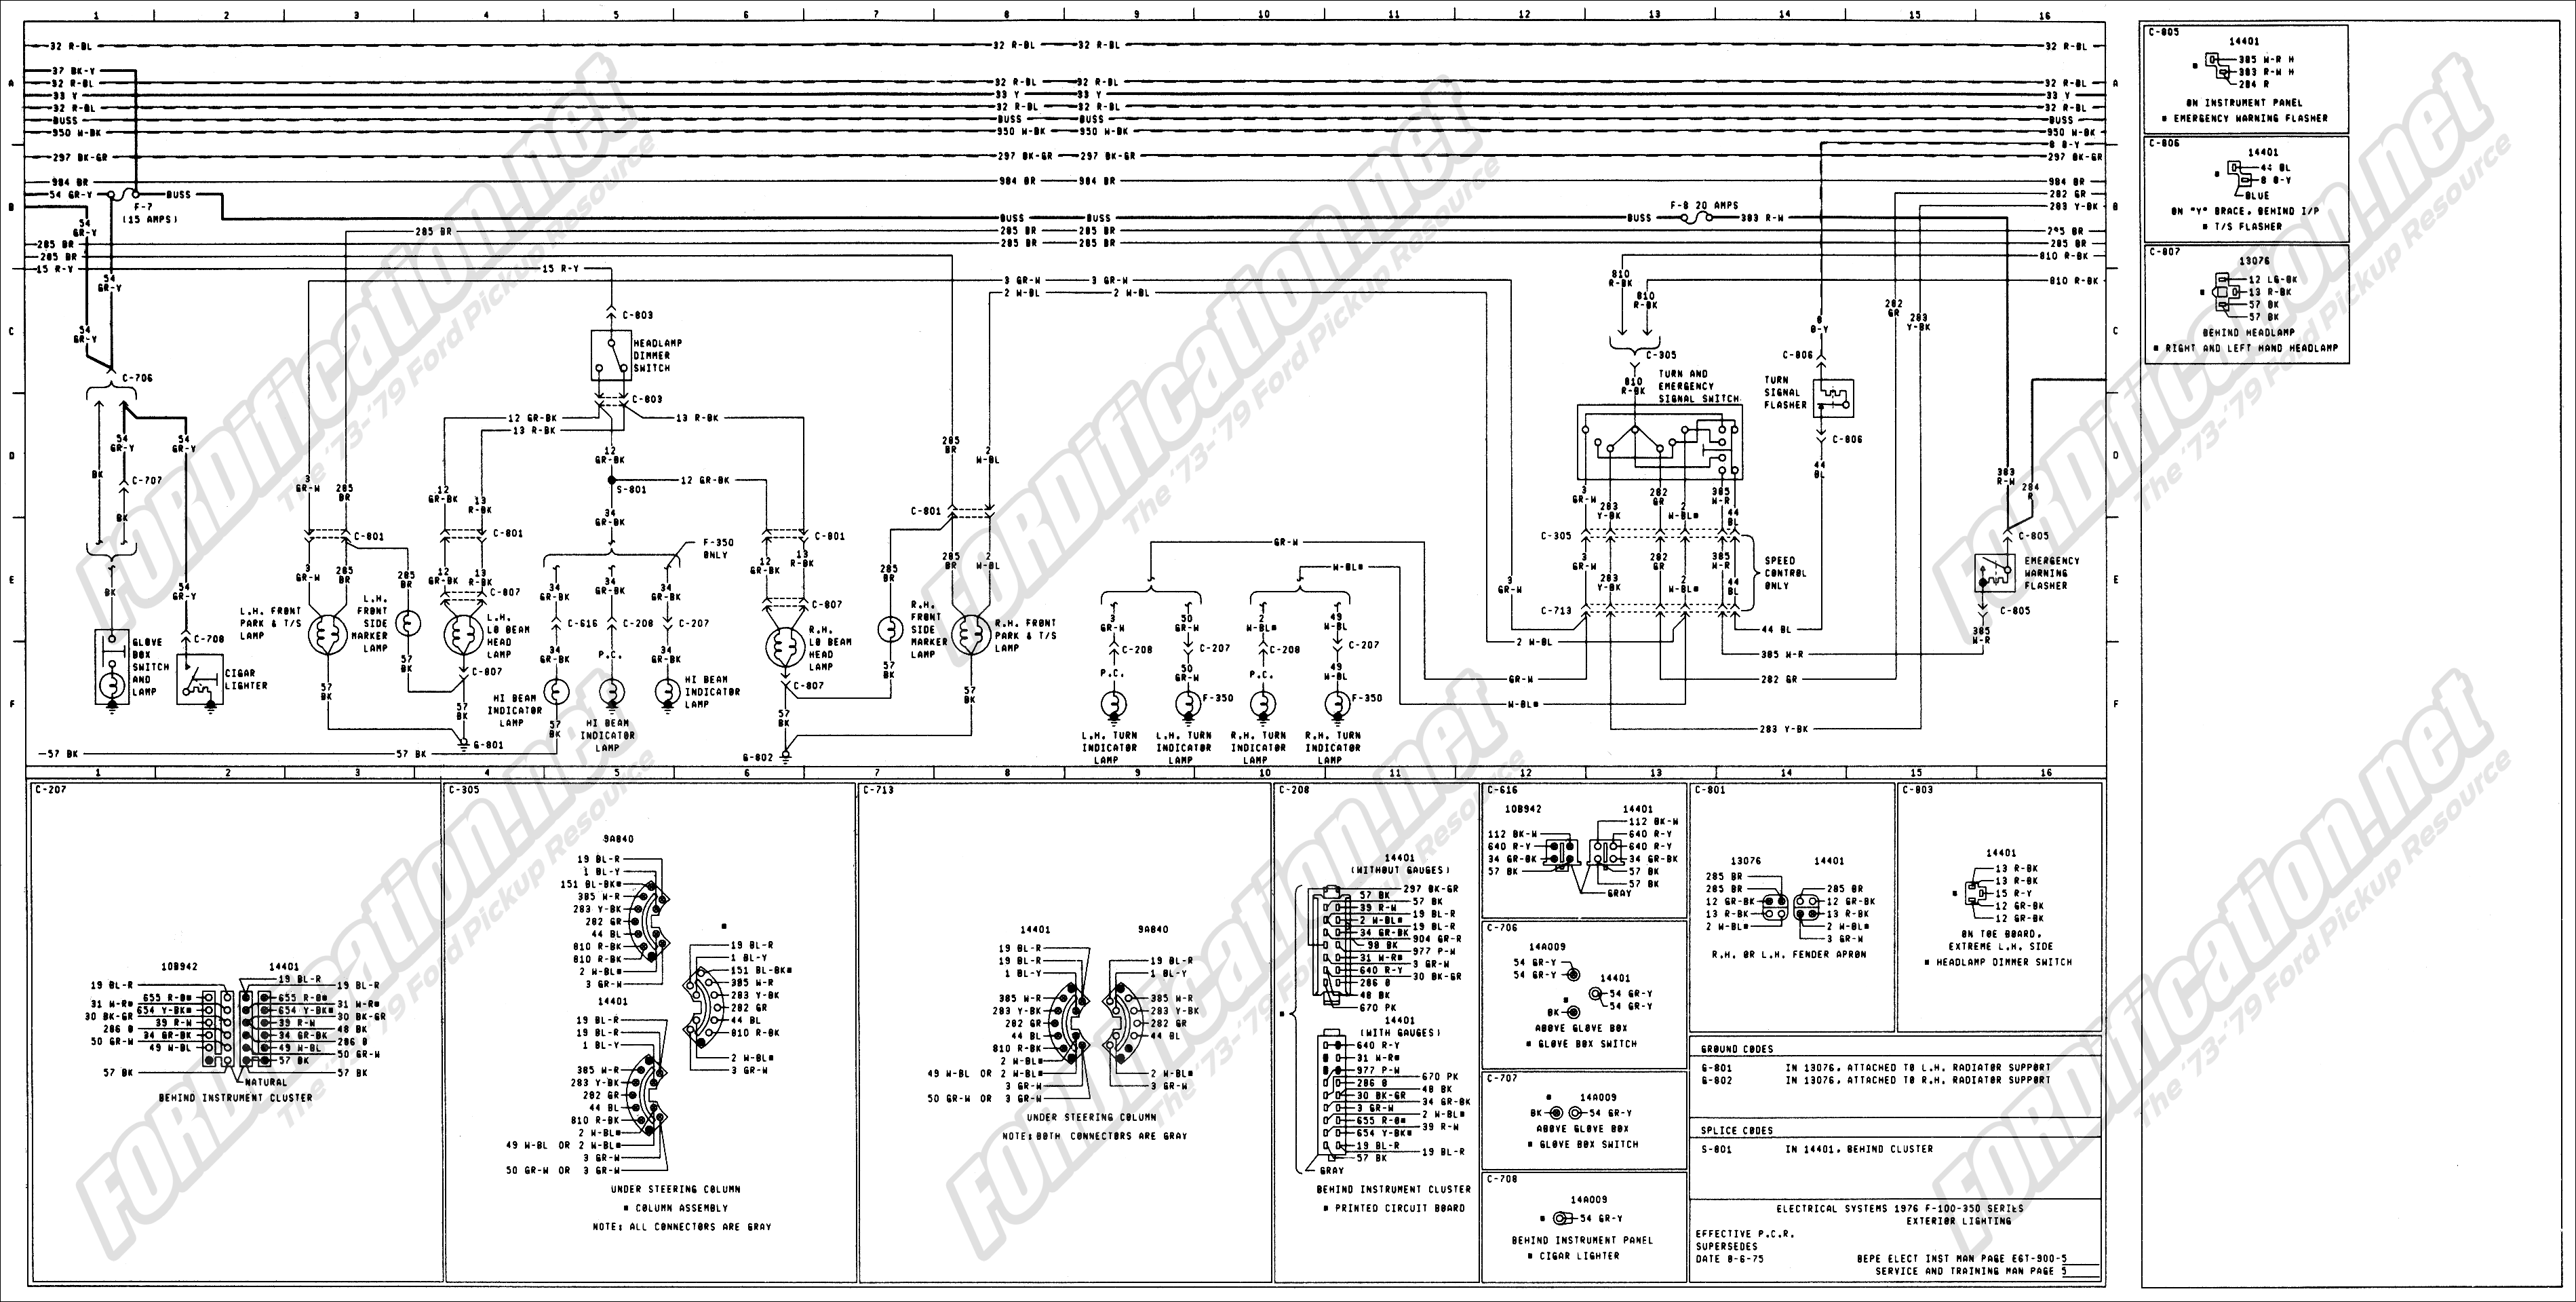 wiring_76master_5of9 wiring diagram for a 73 78 ford f100 wiring diagram library